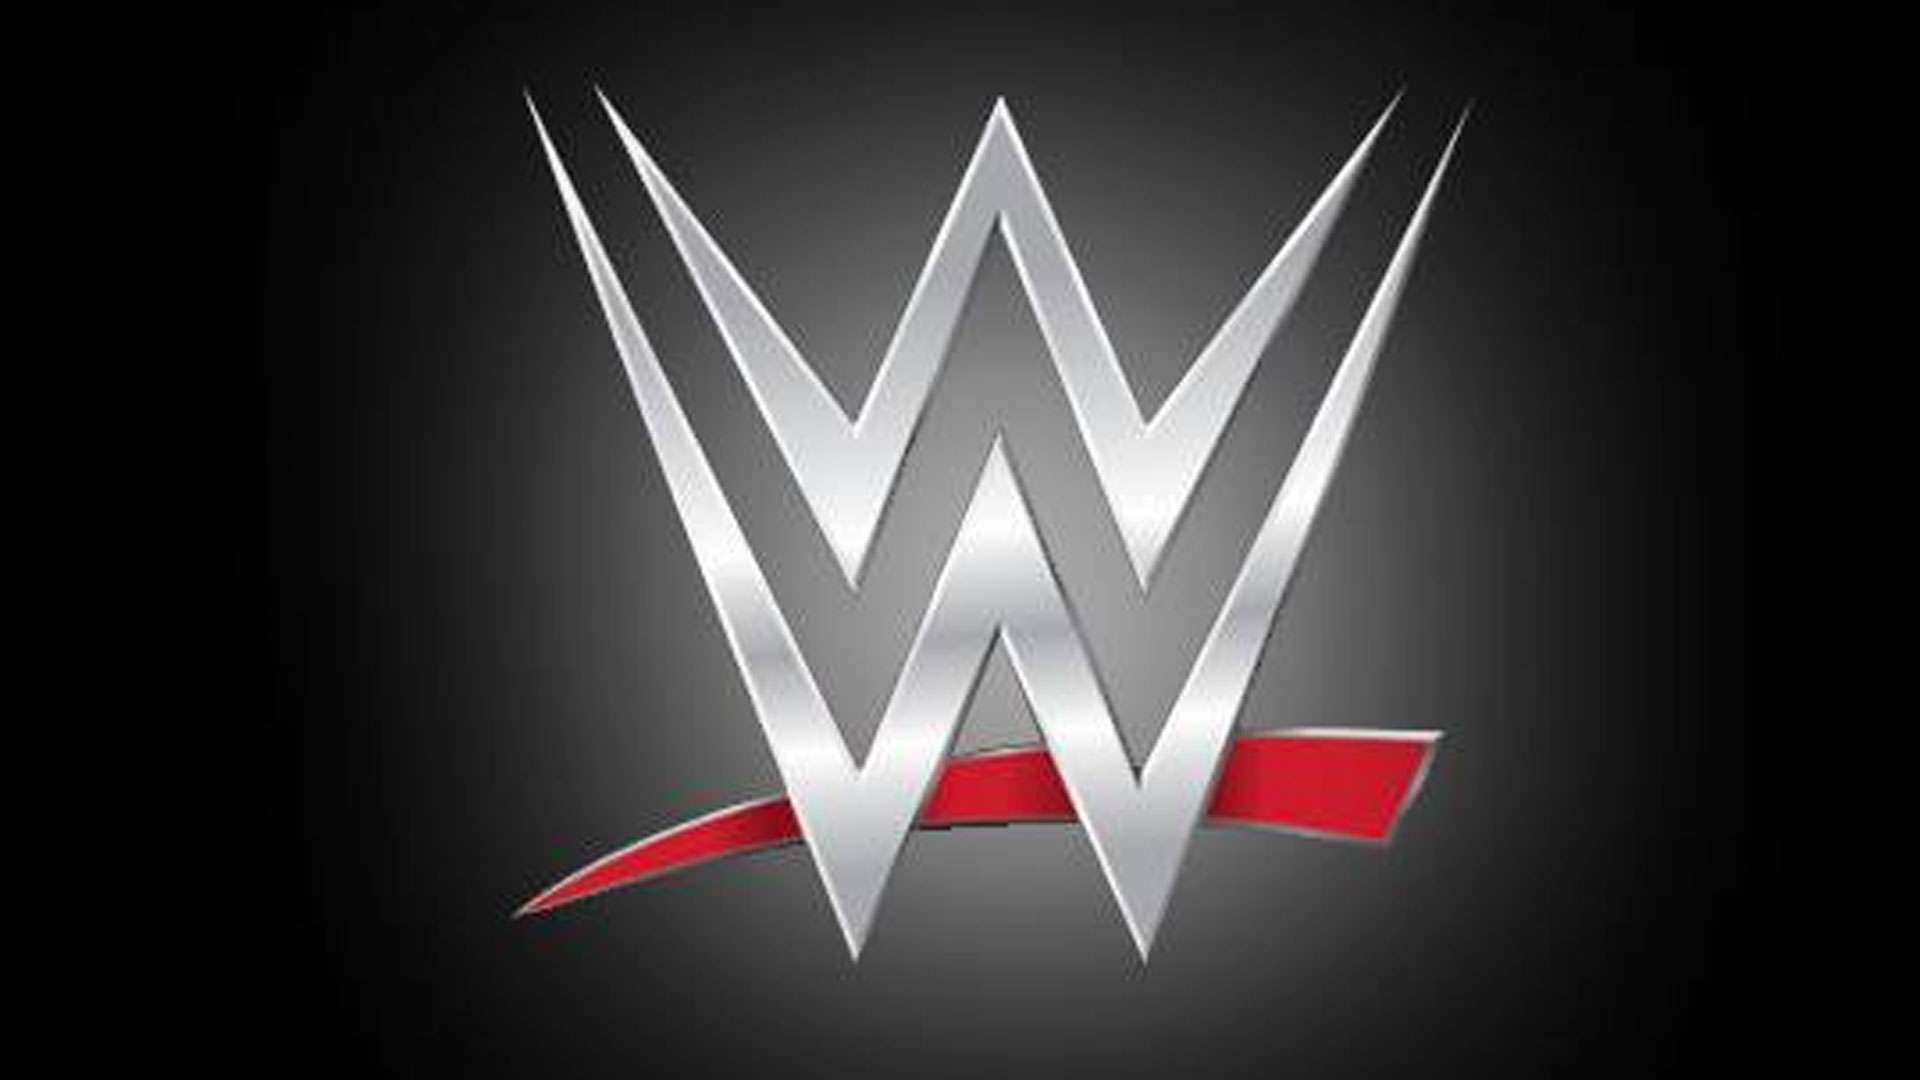 WWE PPV schedule 2020: Dates, locations for every announced 2020 wrestling event